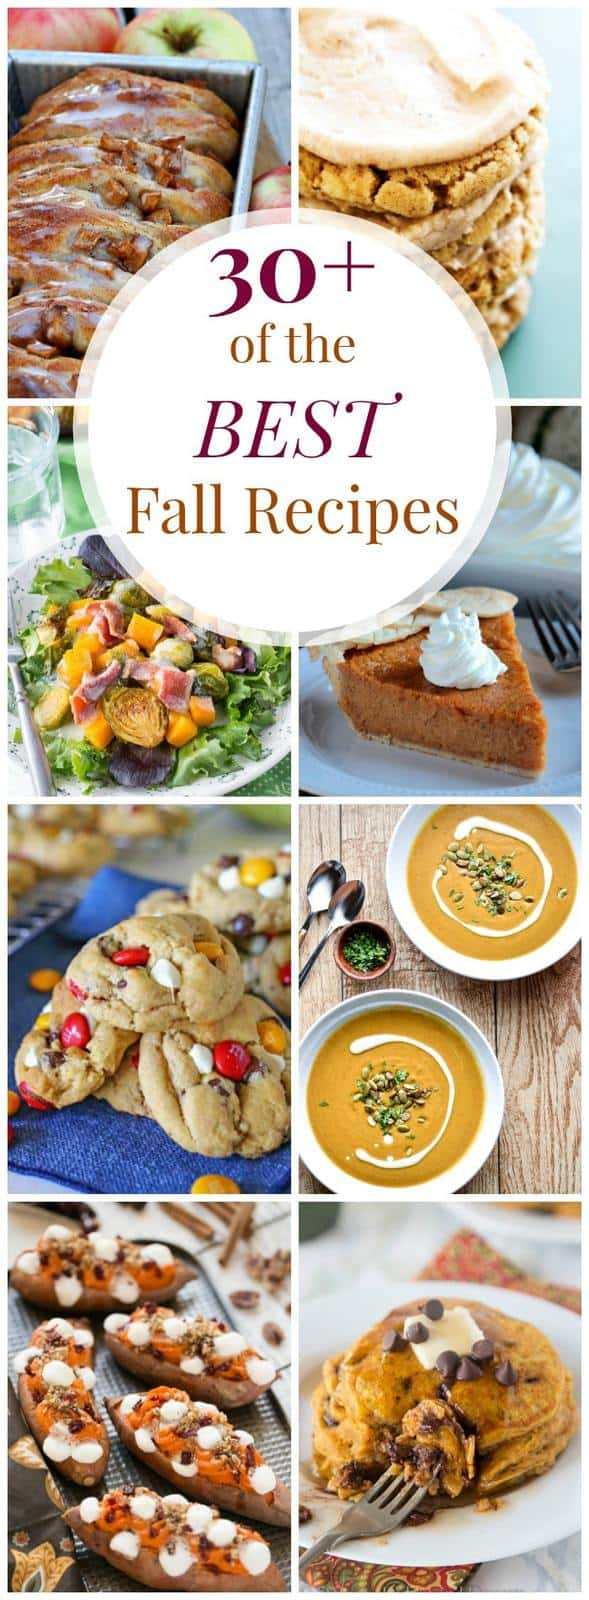 30+ Best Fall Recipes with apples, pumpkin, squash, sweet potatoes and more